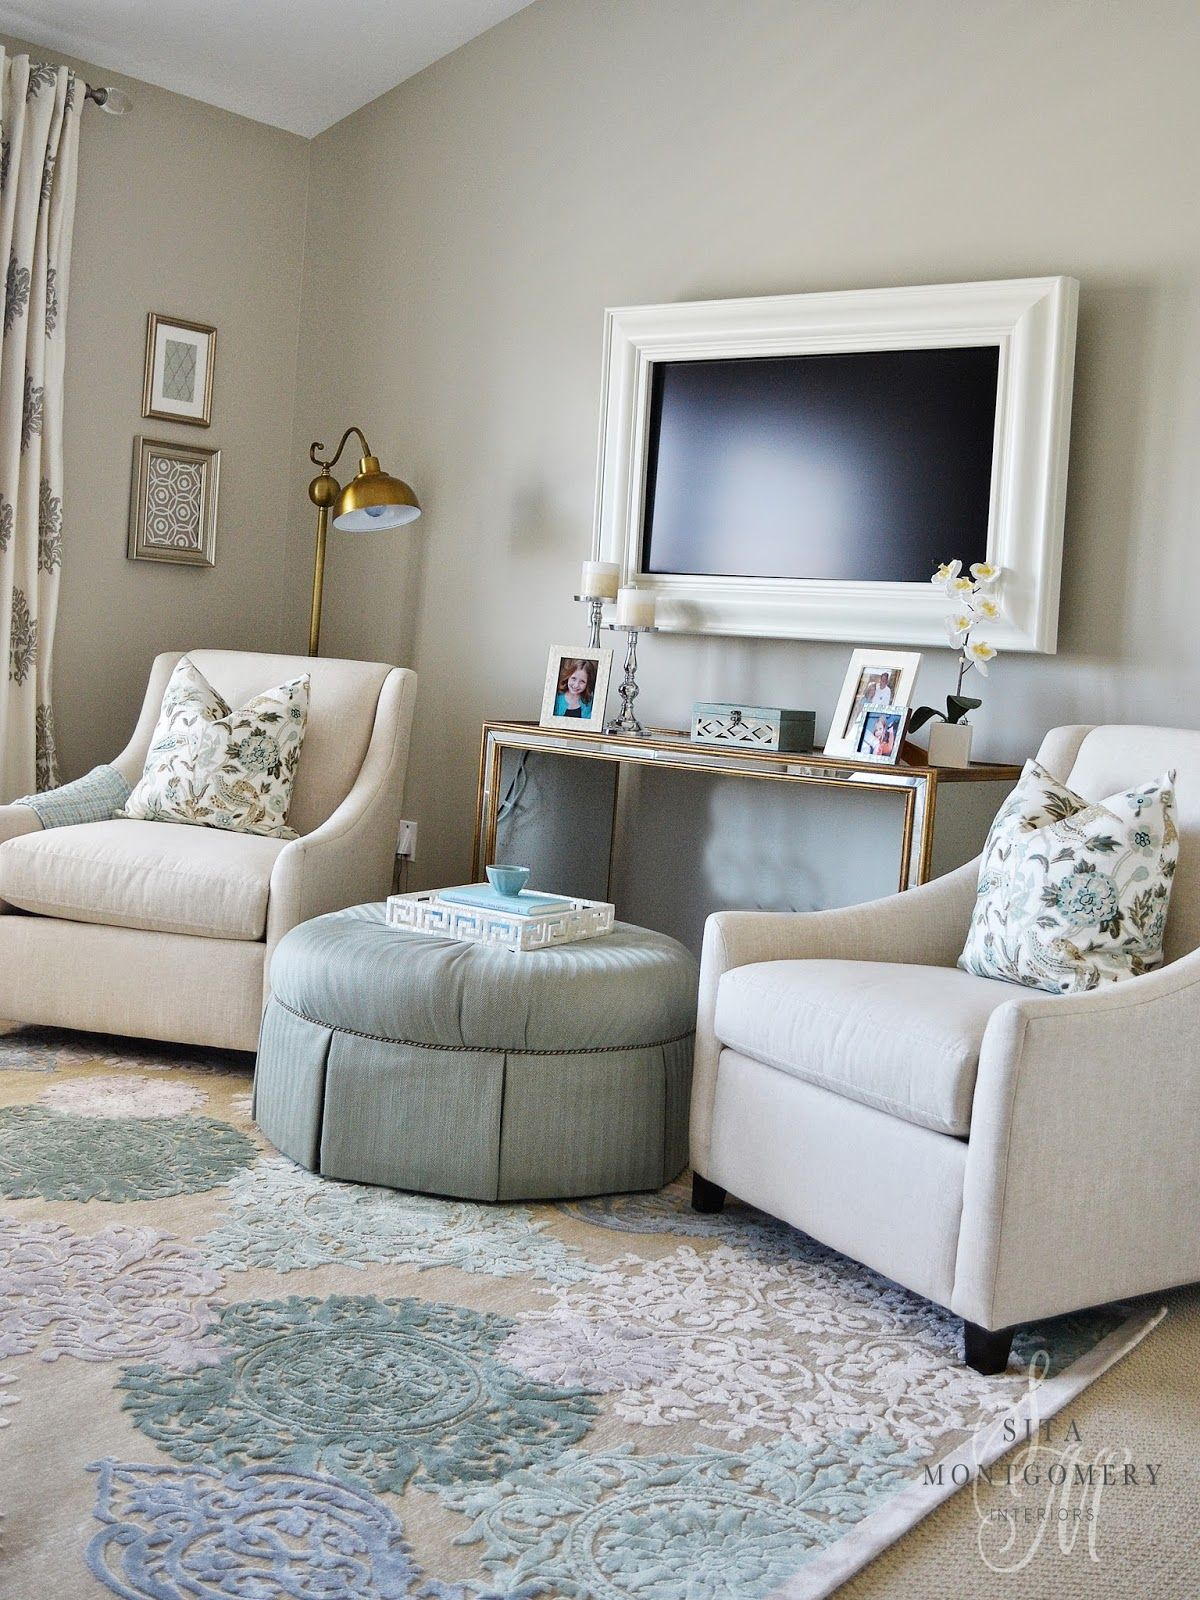 Bedroom Sitting Area Furniture Ideas Love This Sitting Area In A Master Bedroom Sita